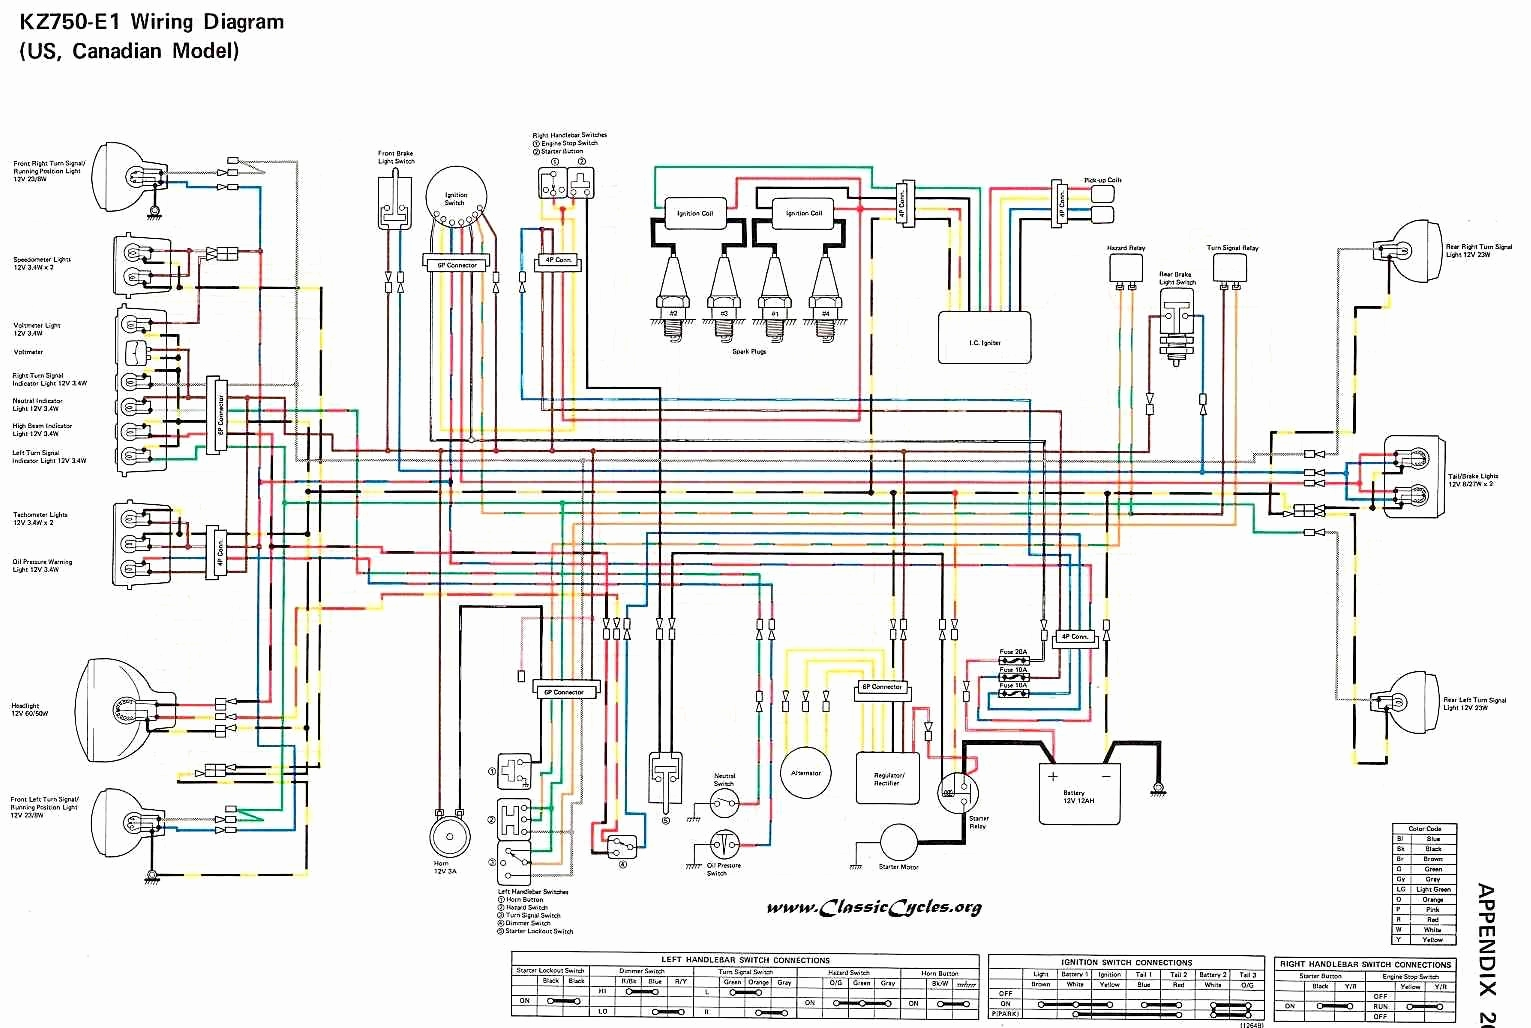 harley davidson voltage regulator wiring diagram | free ... harley davidson electrical diagrams 1999 harley davidson wiring diagrams